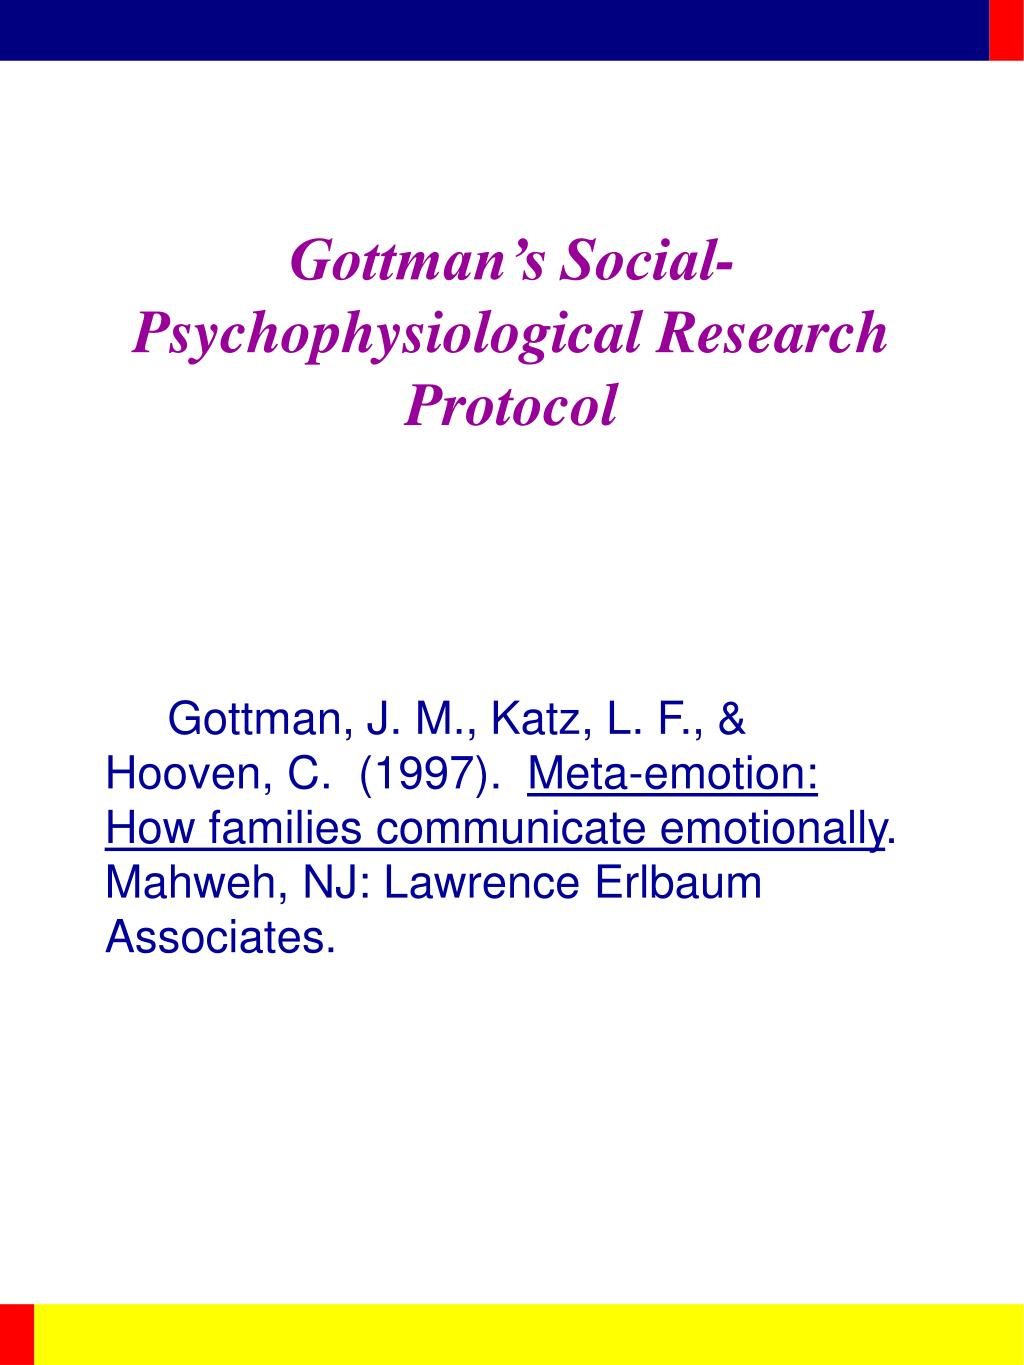 Gottman's Social-Psychophysiological Research Protocol